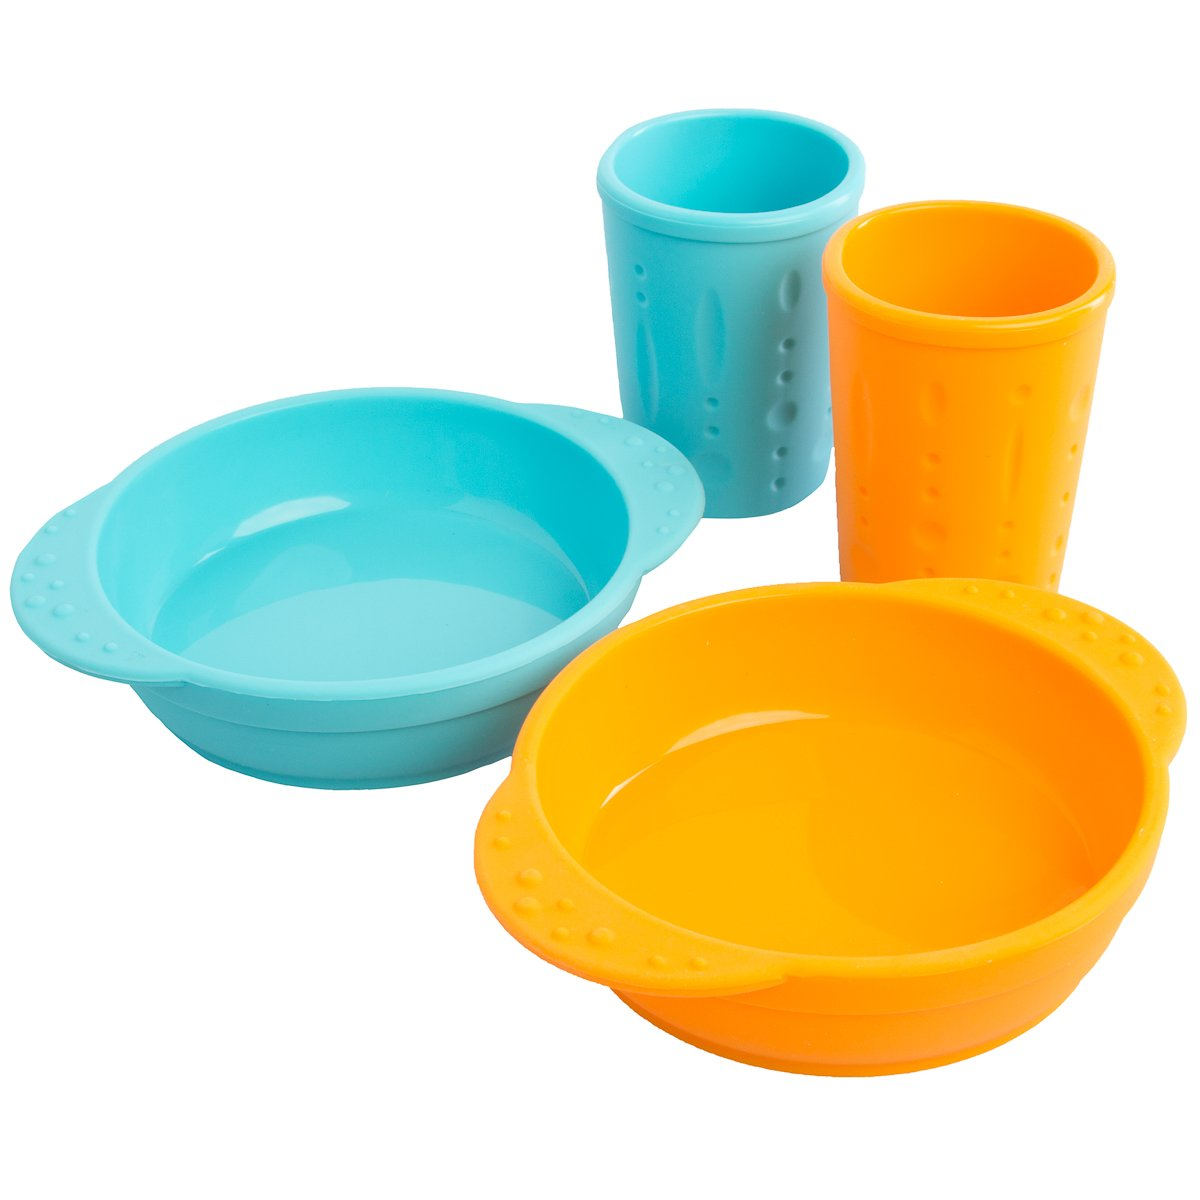 Kinderville (4 Piece Set) Toddlers & Kids Cups & Bowls Dishwasher/Microwave Safe BPA-Free Silicone